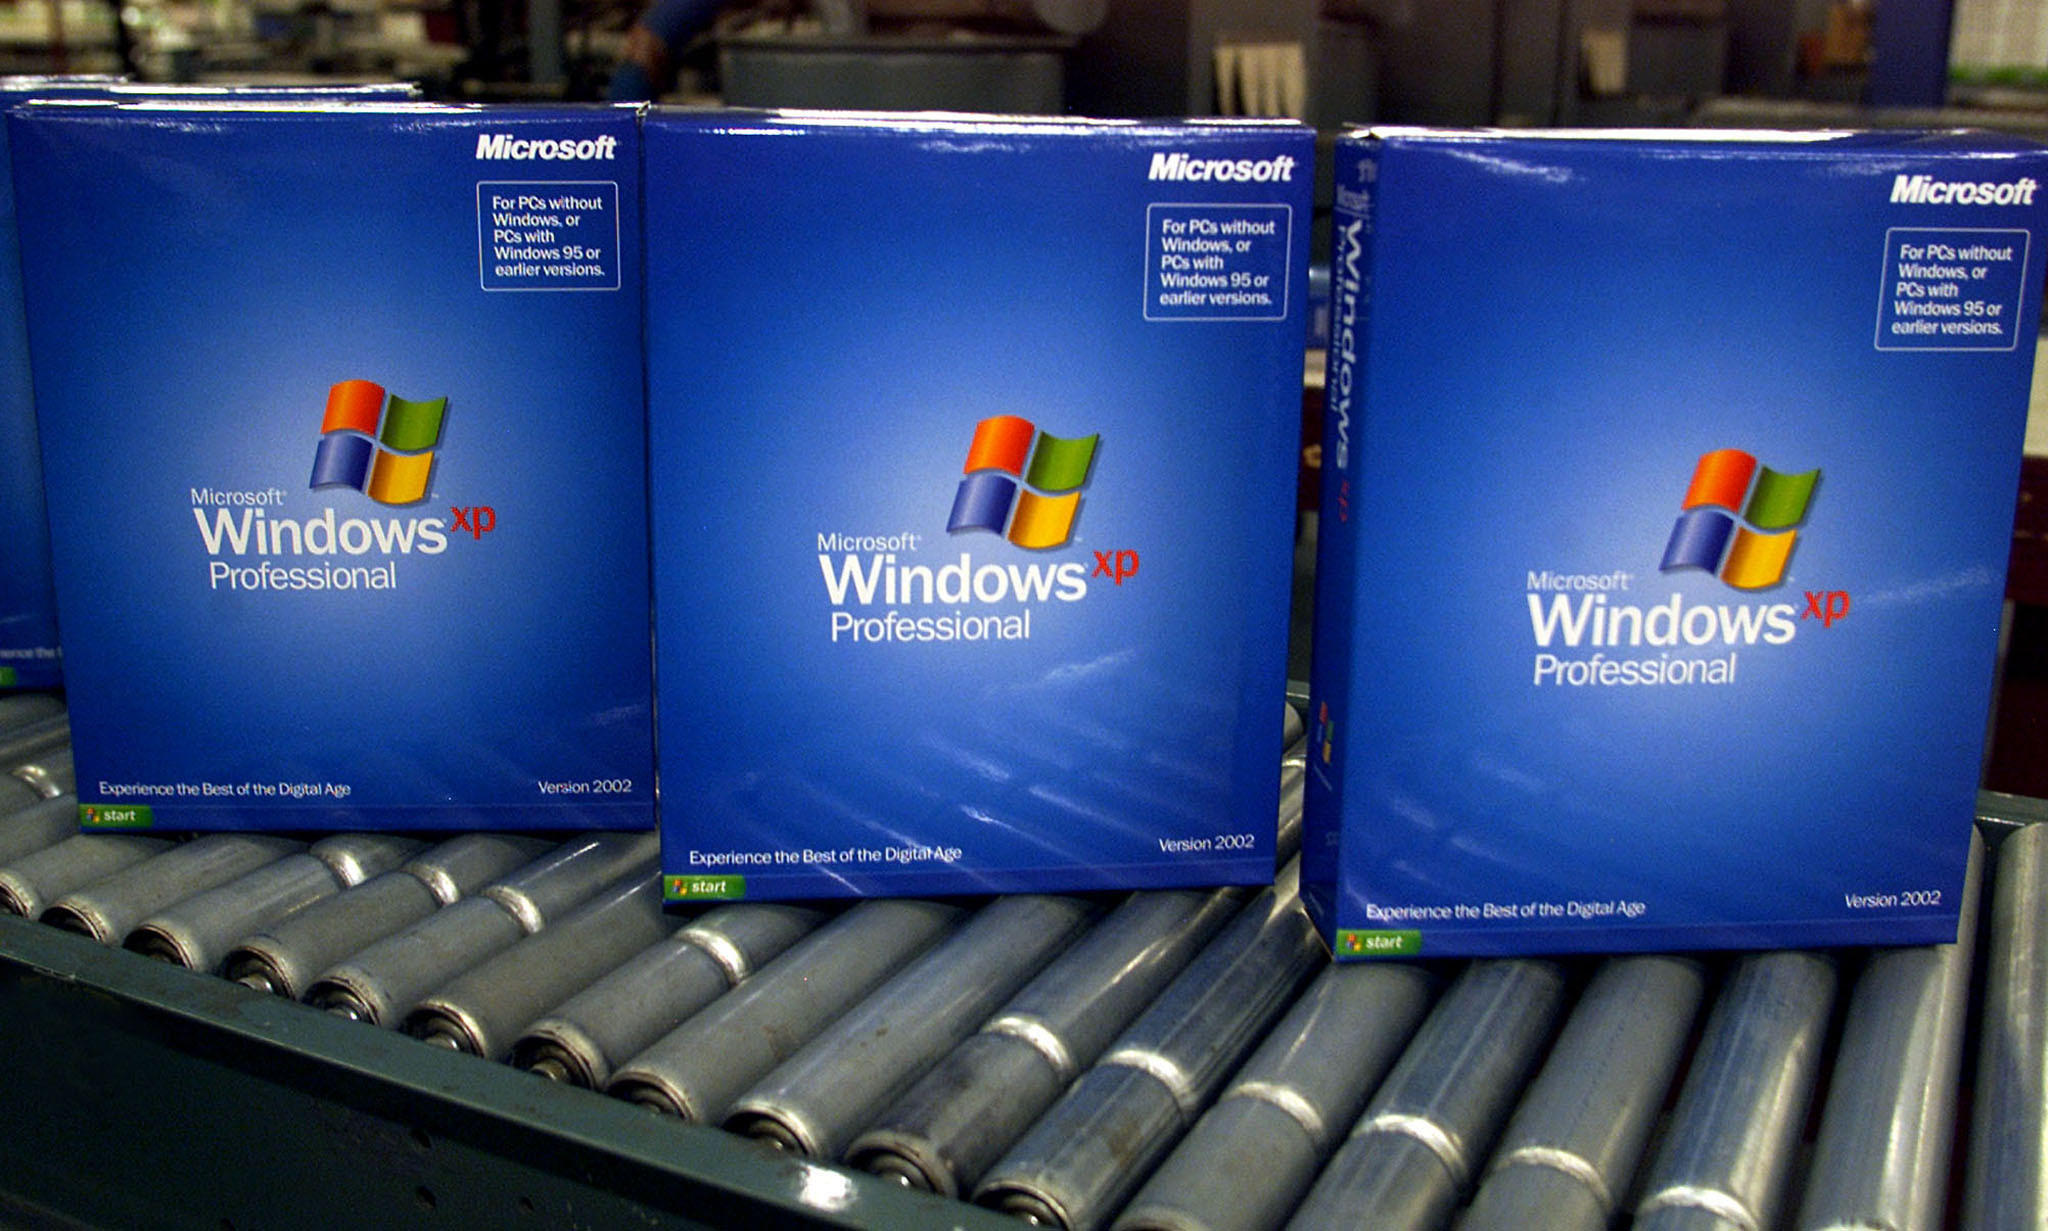 Microsoft will retire Windows XP next April, but Google will continue to support its version of the Chrome browser until at least April 2015.